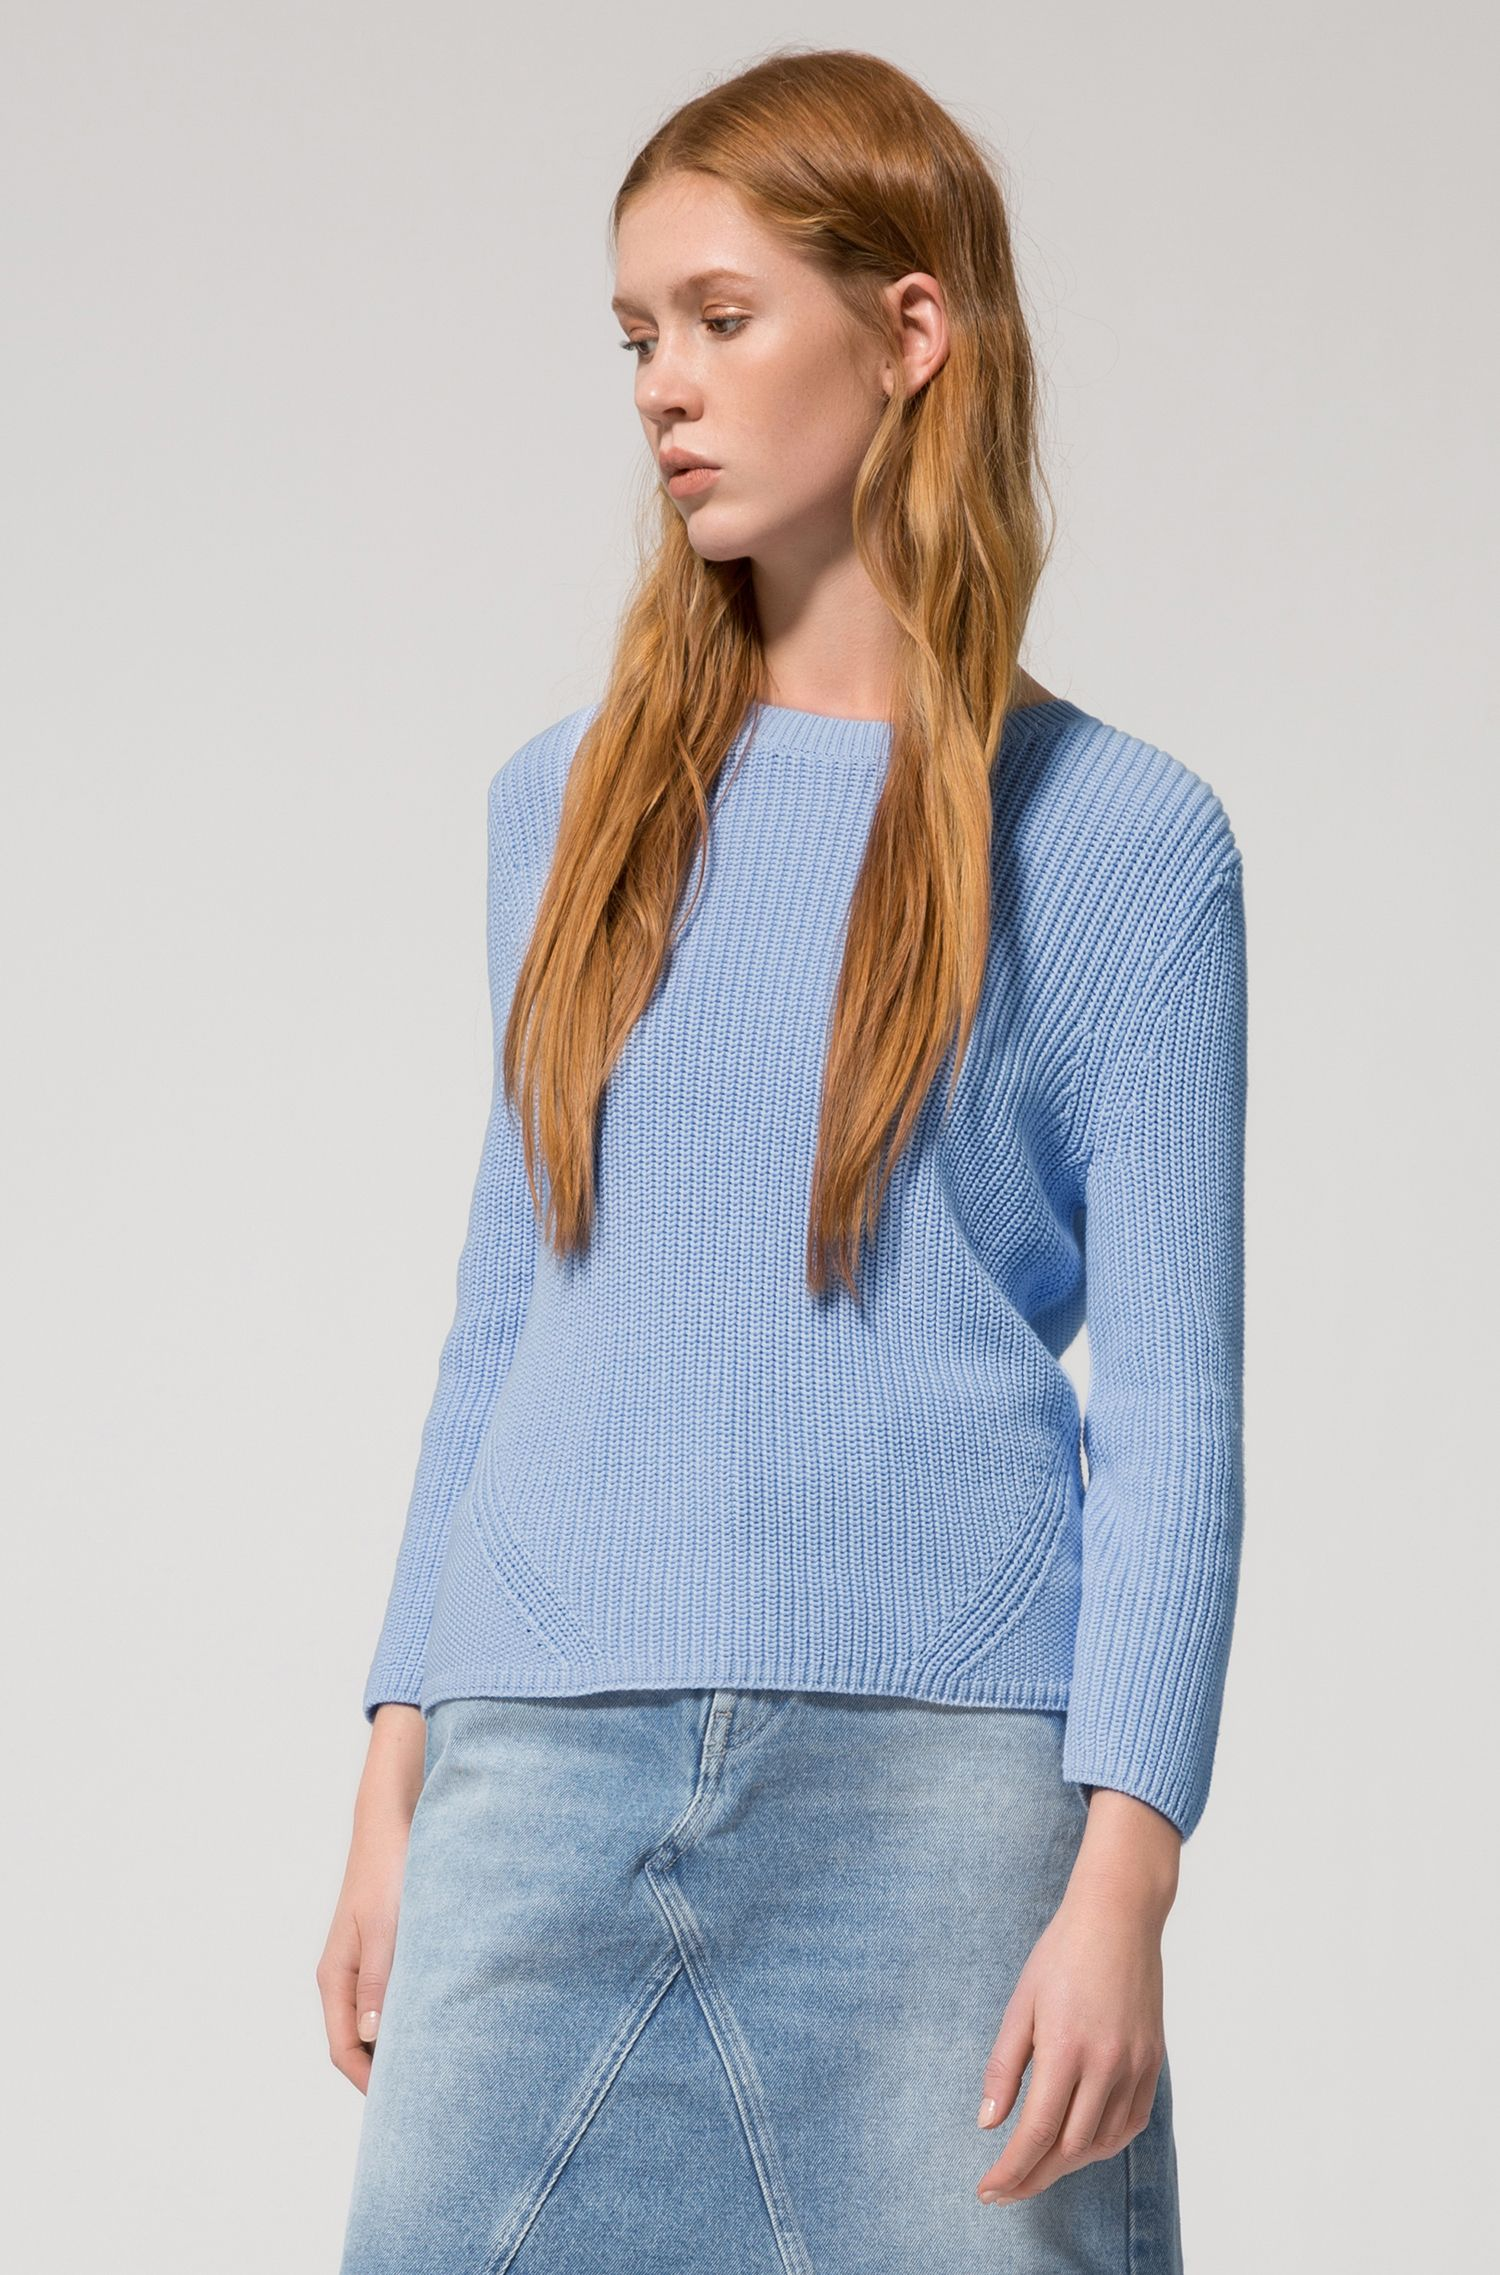 Half-cardigan knitted sweater in pure cotton